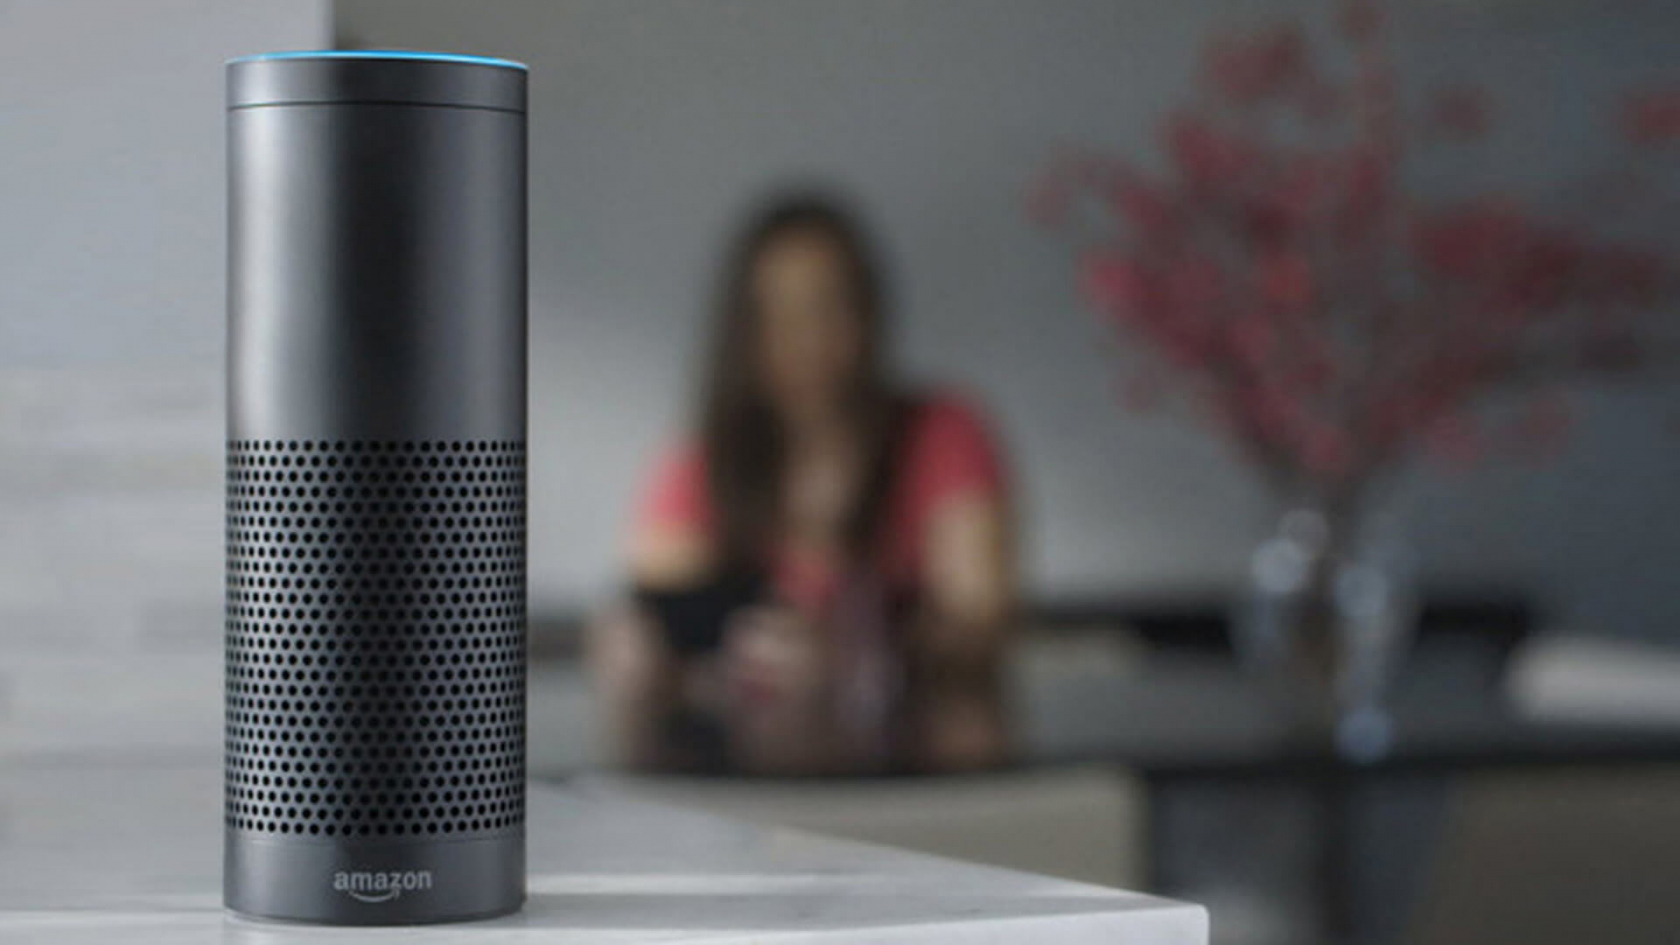 Amazon sold 'tens of millions' of Alexa-enabled devices during the holidays